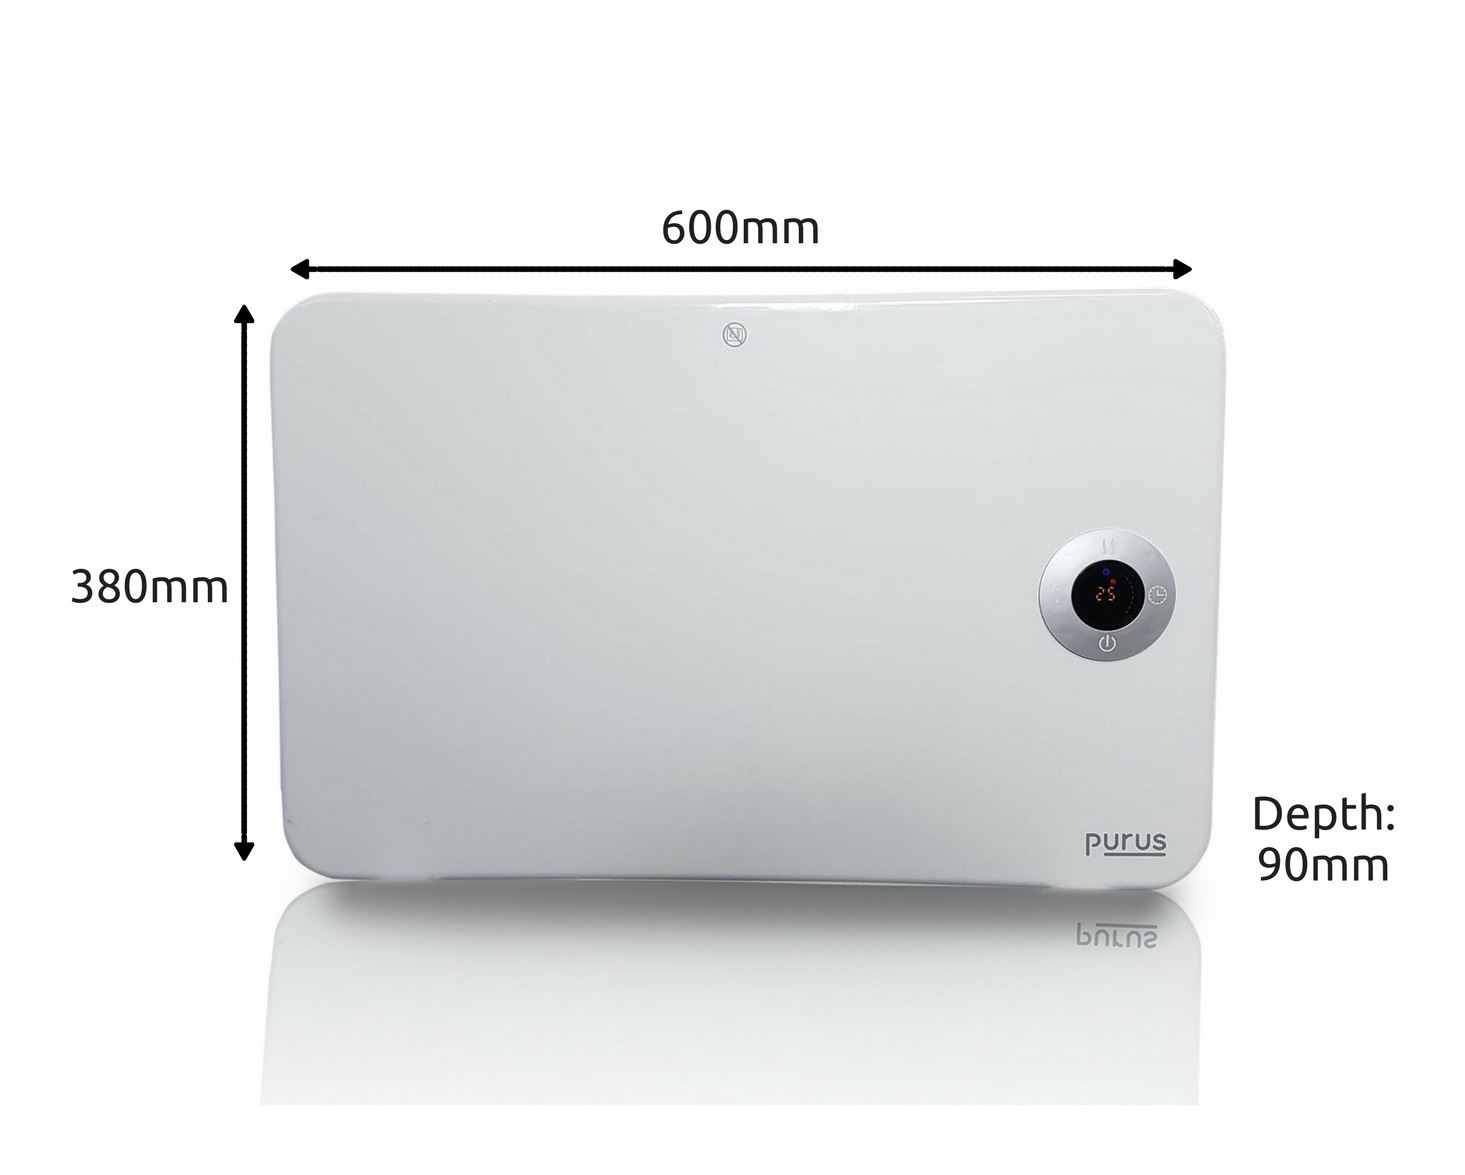 Wall Mount Heater With Thermostat : Kw bathroom electric wall mounted panel heater radiator